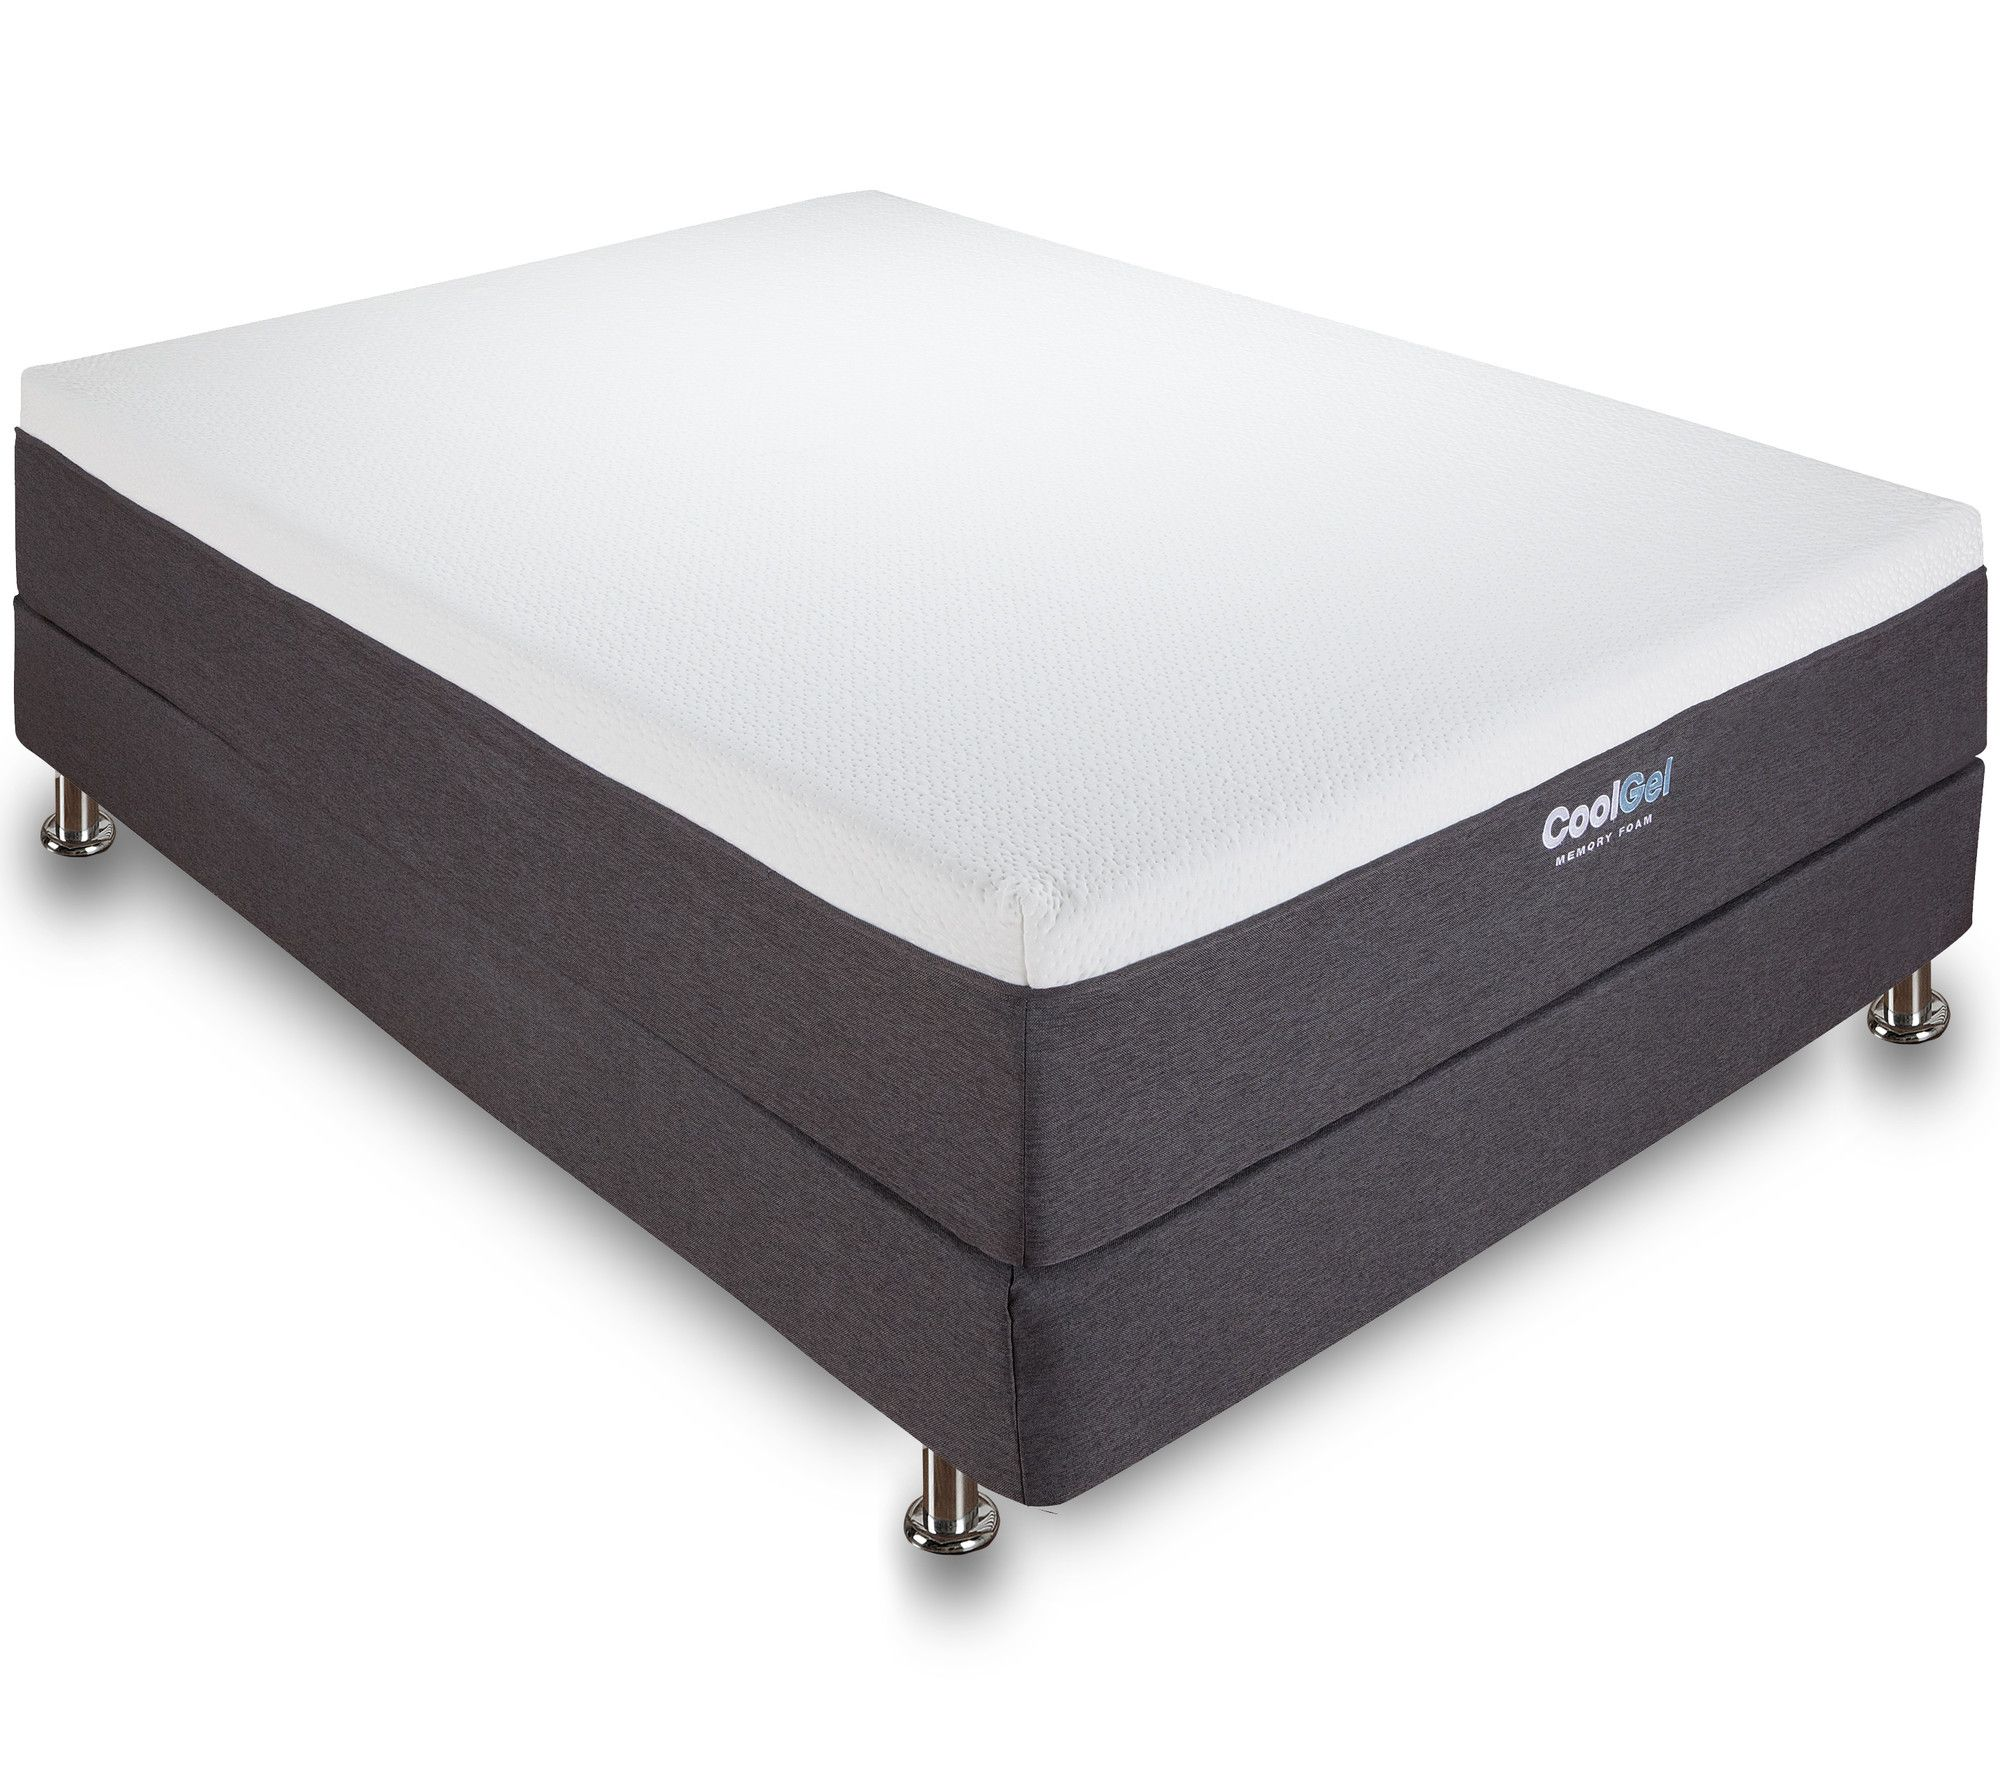 Classic Brands Cool Gel 12 Ventilated Gel Memory Foam Mattress Reviews Wayfair Gel Memory Foam Mattress Memory Foam Mattress Mattress